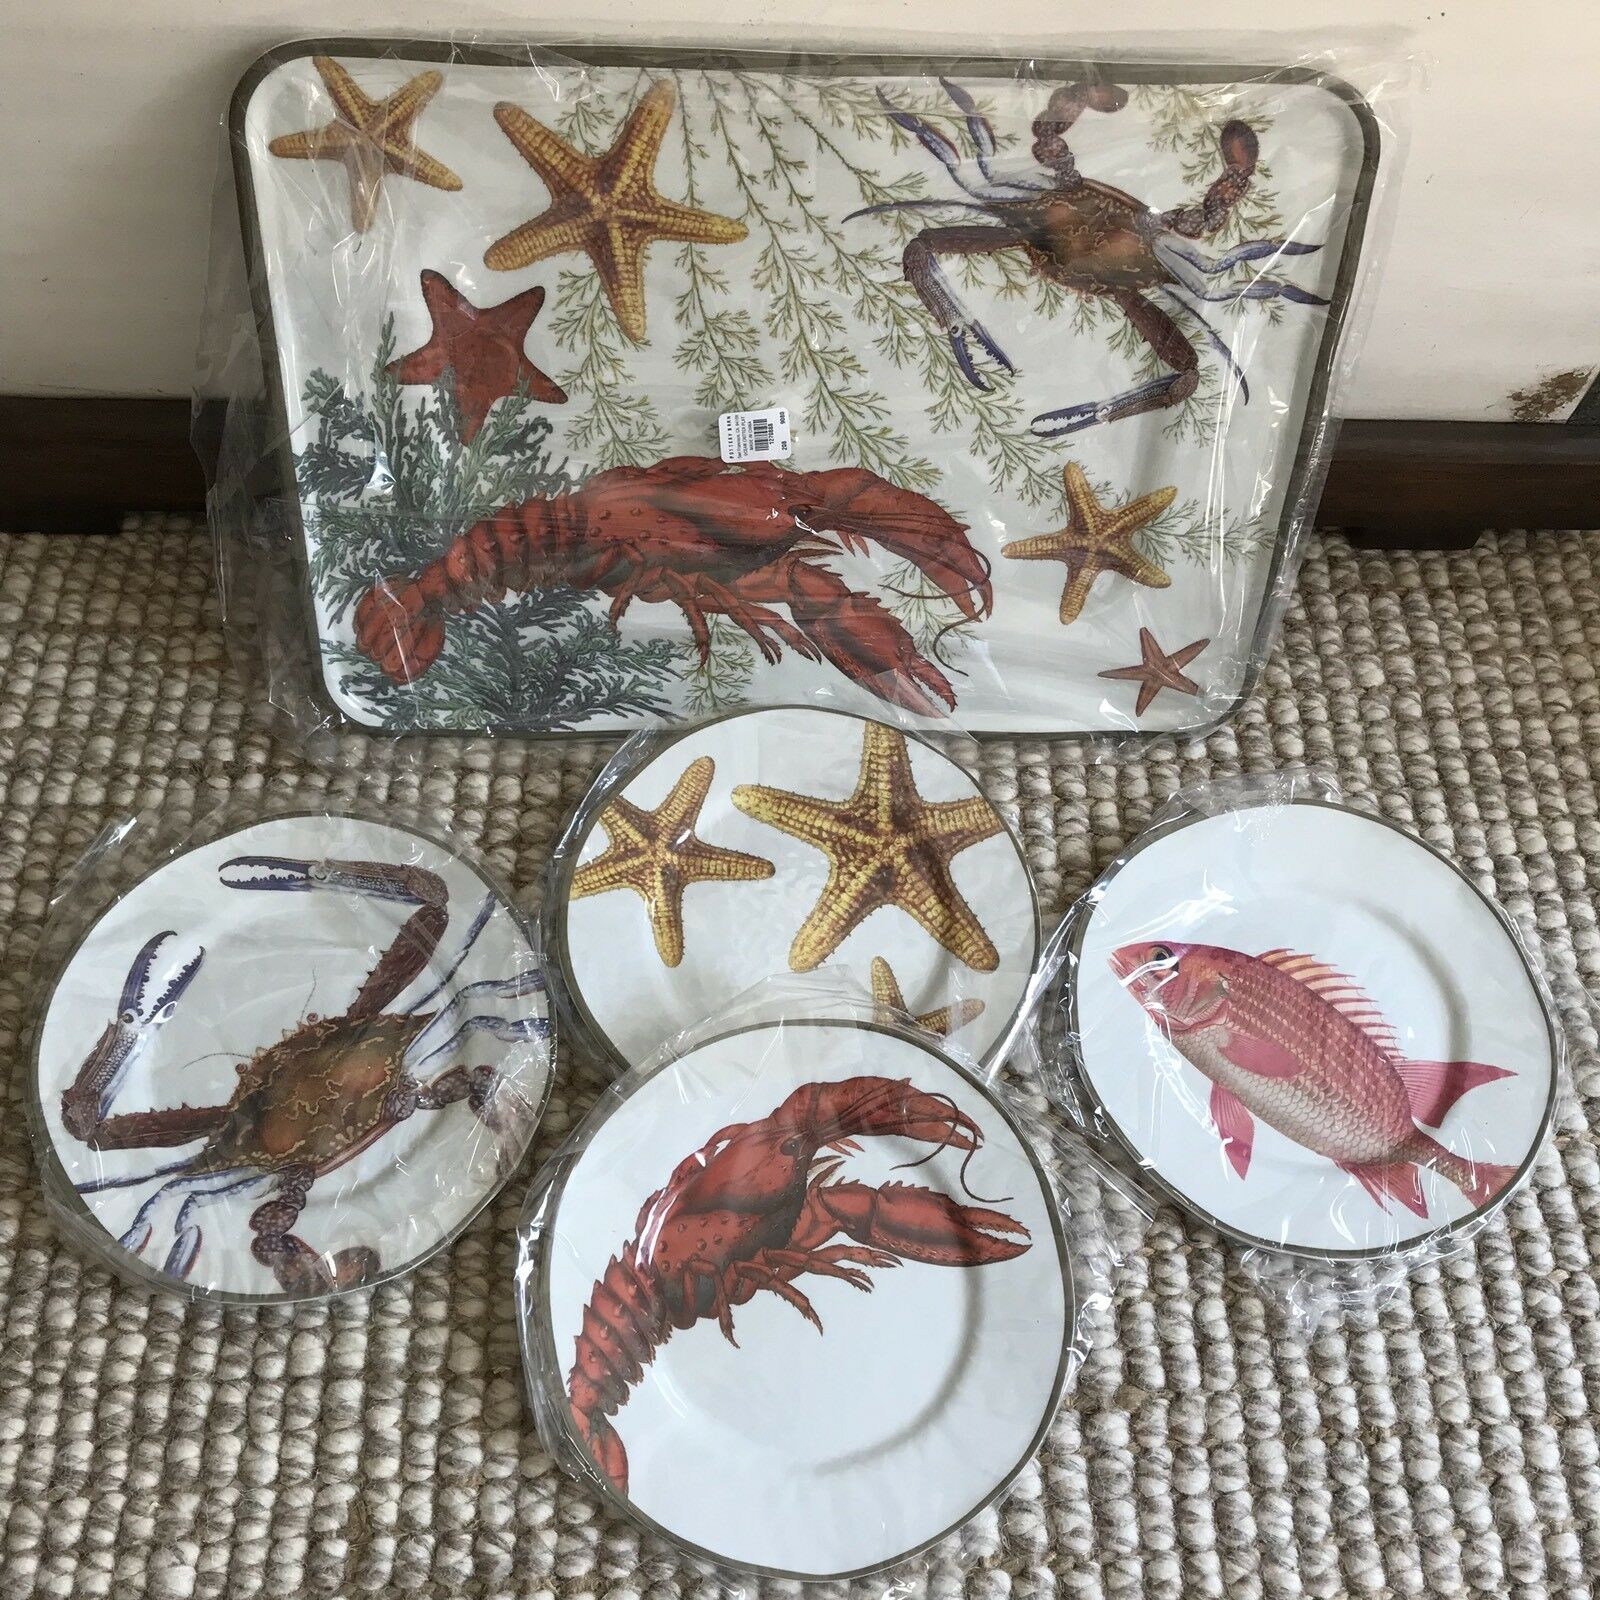 Pottery Barn 9pc Playa Ocean Critter Melamine Appetizer Lunch 8 Plates + Platter